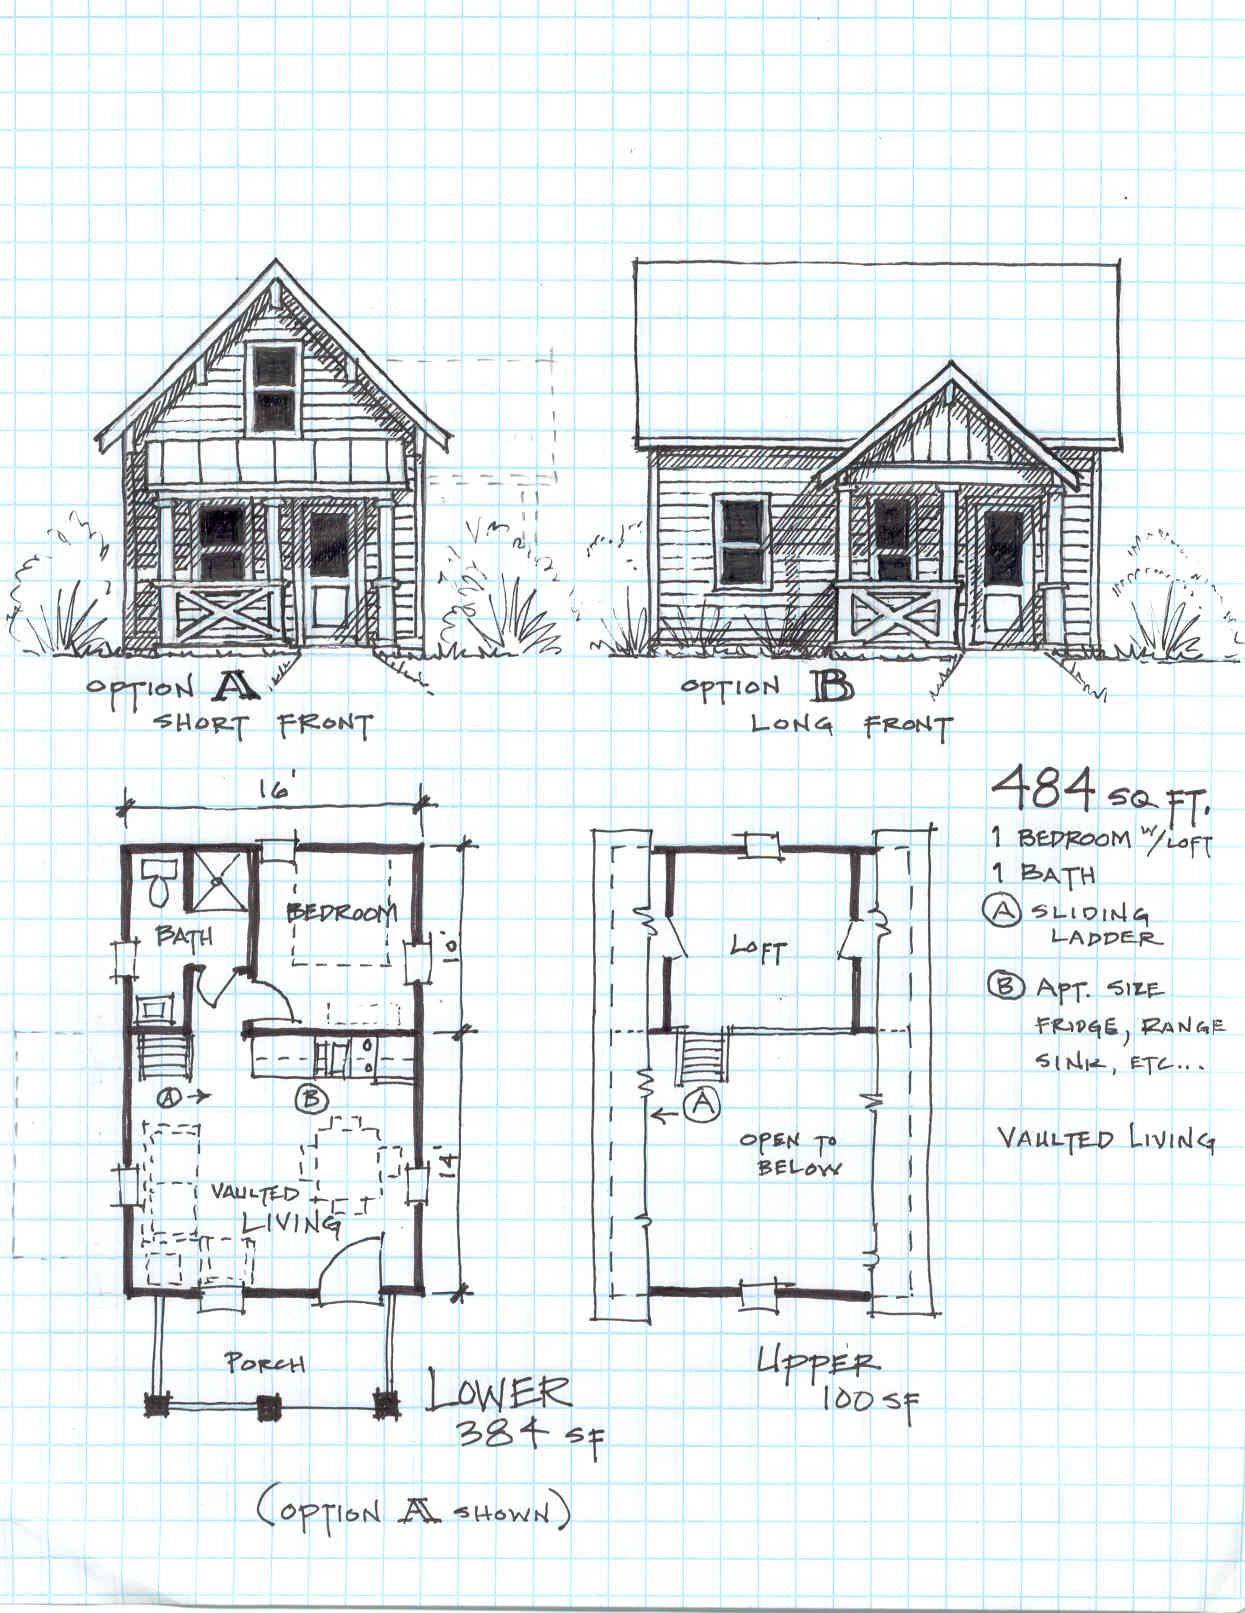 Micro House Plans Free Fresh 30 Small Cabin Plans for the Homestead Prepper